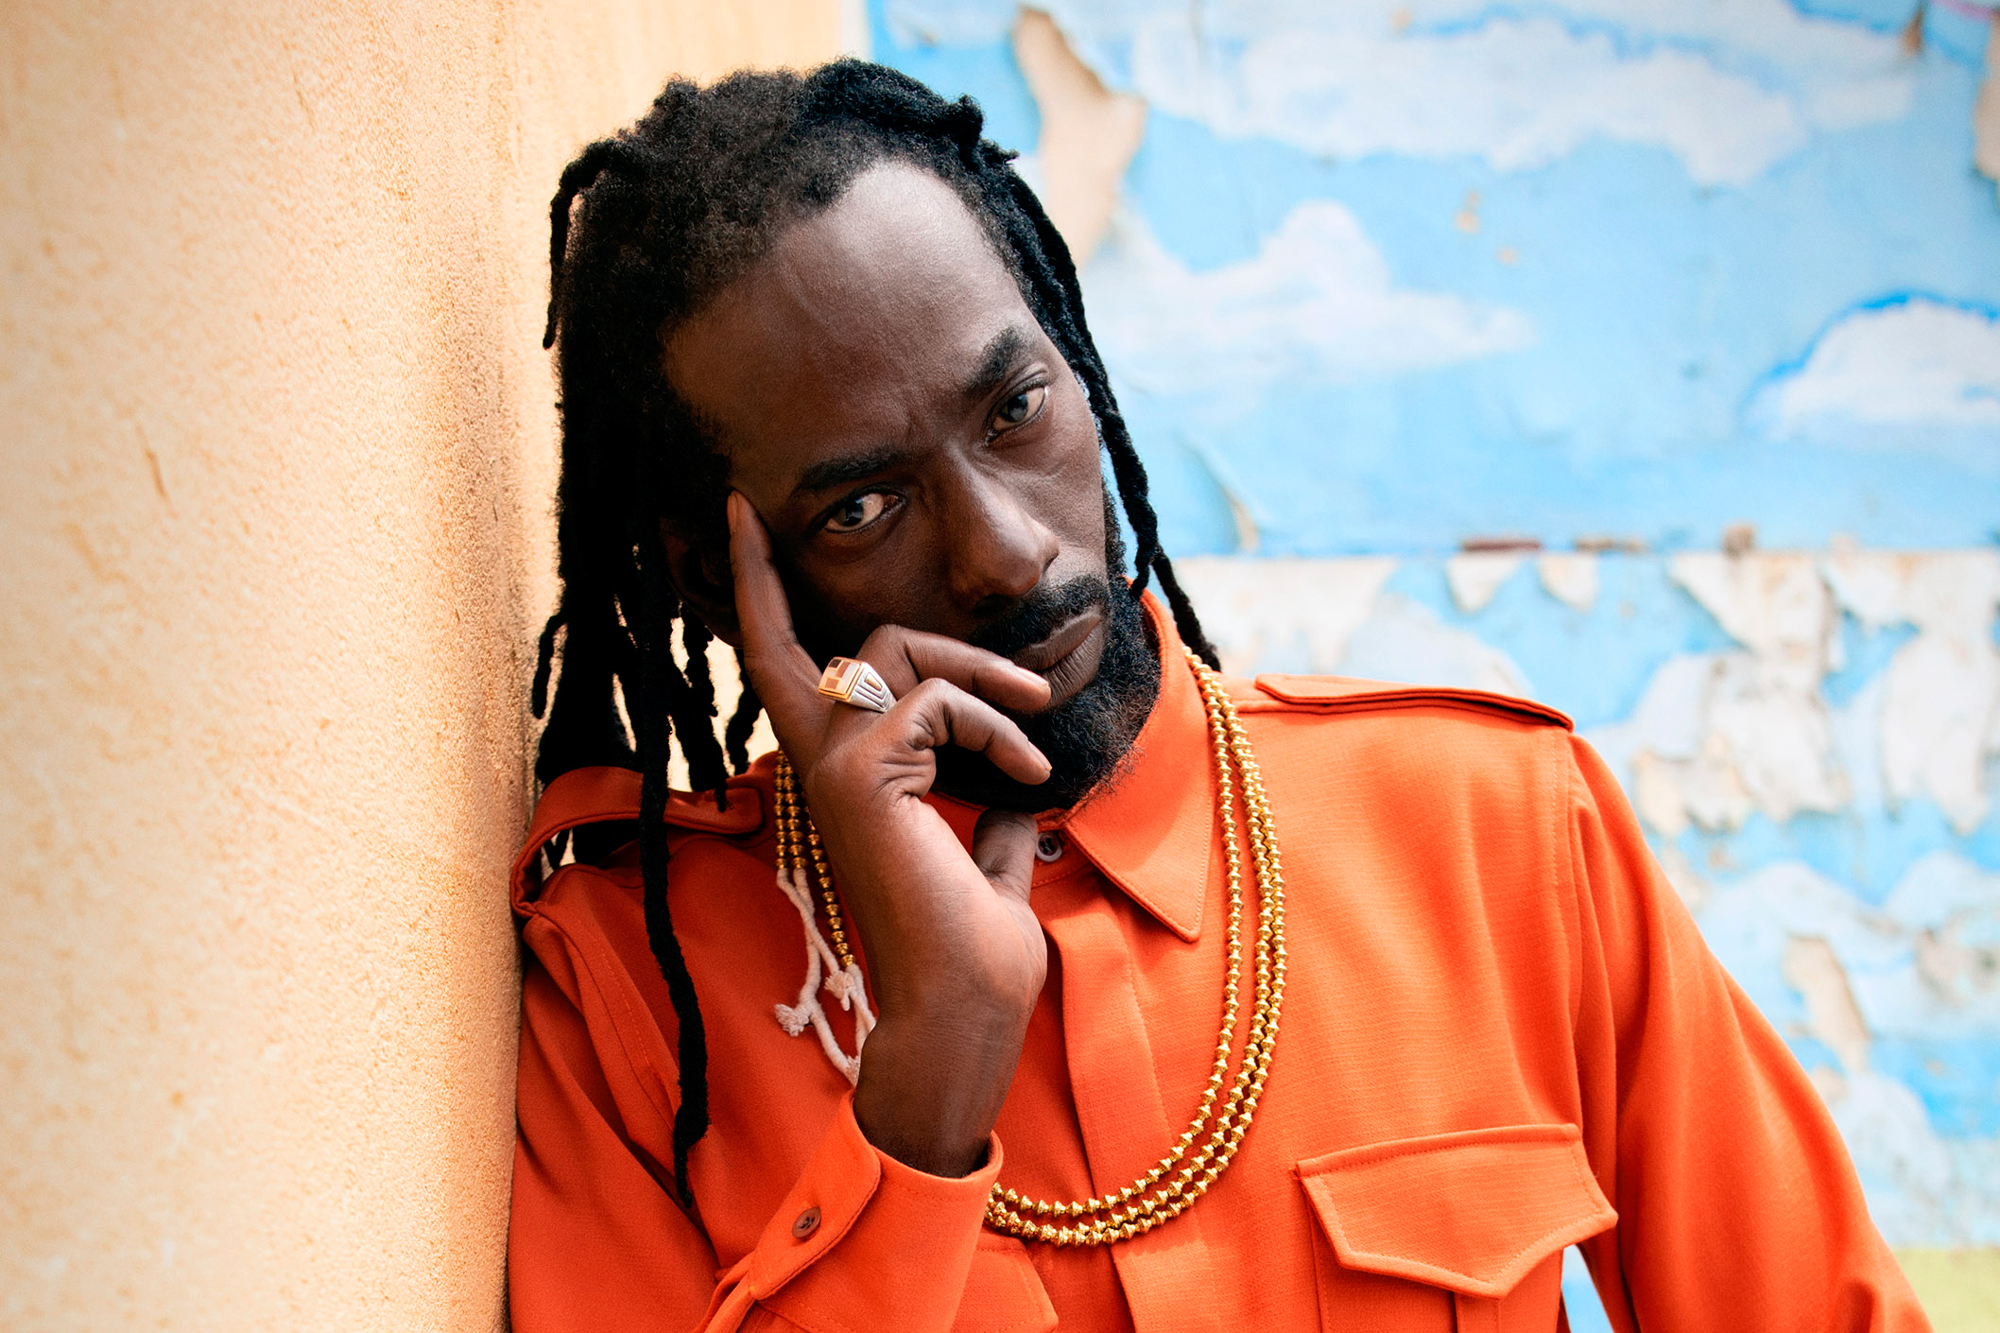 The 47-year old son of father (?) and mother(?) Buju Banton in 2021 photo. Buju Banton earned a  million dollar salary - leaving the net worth at  million in 2021